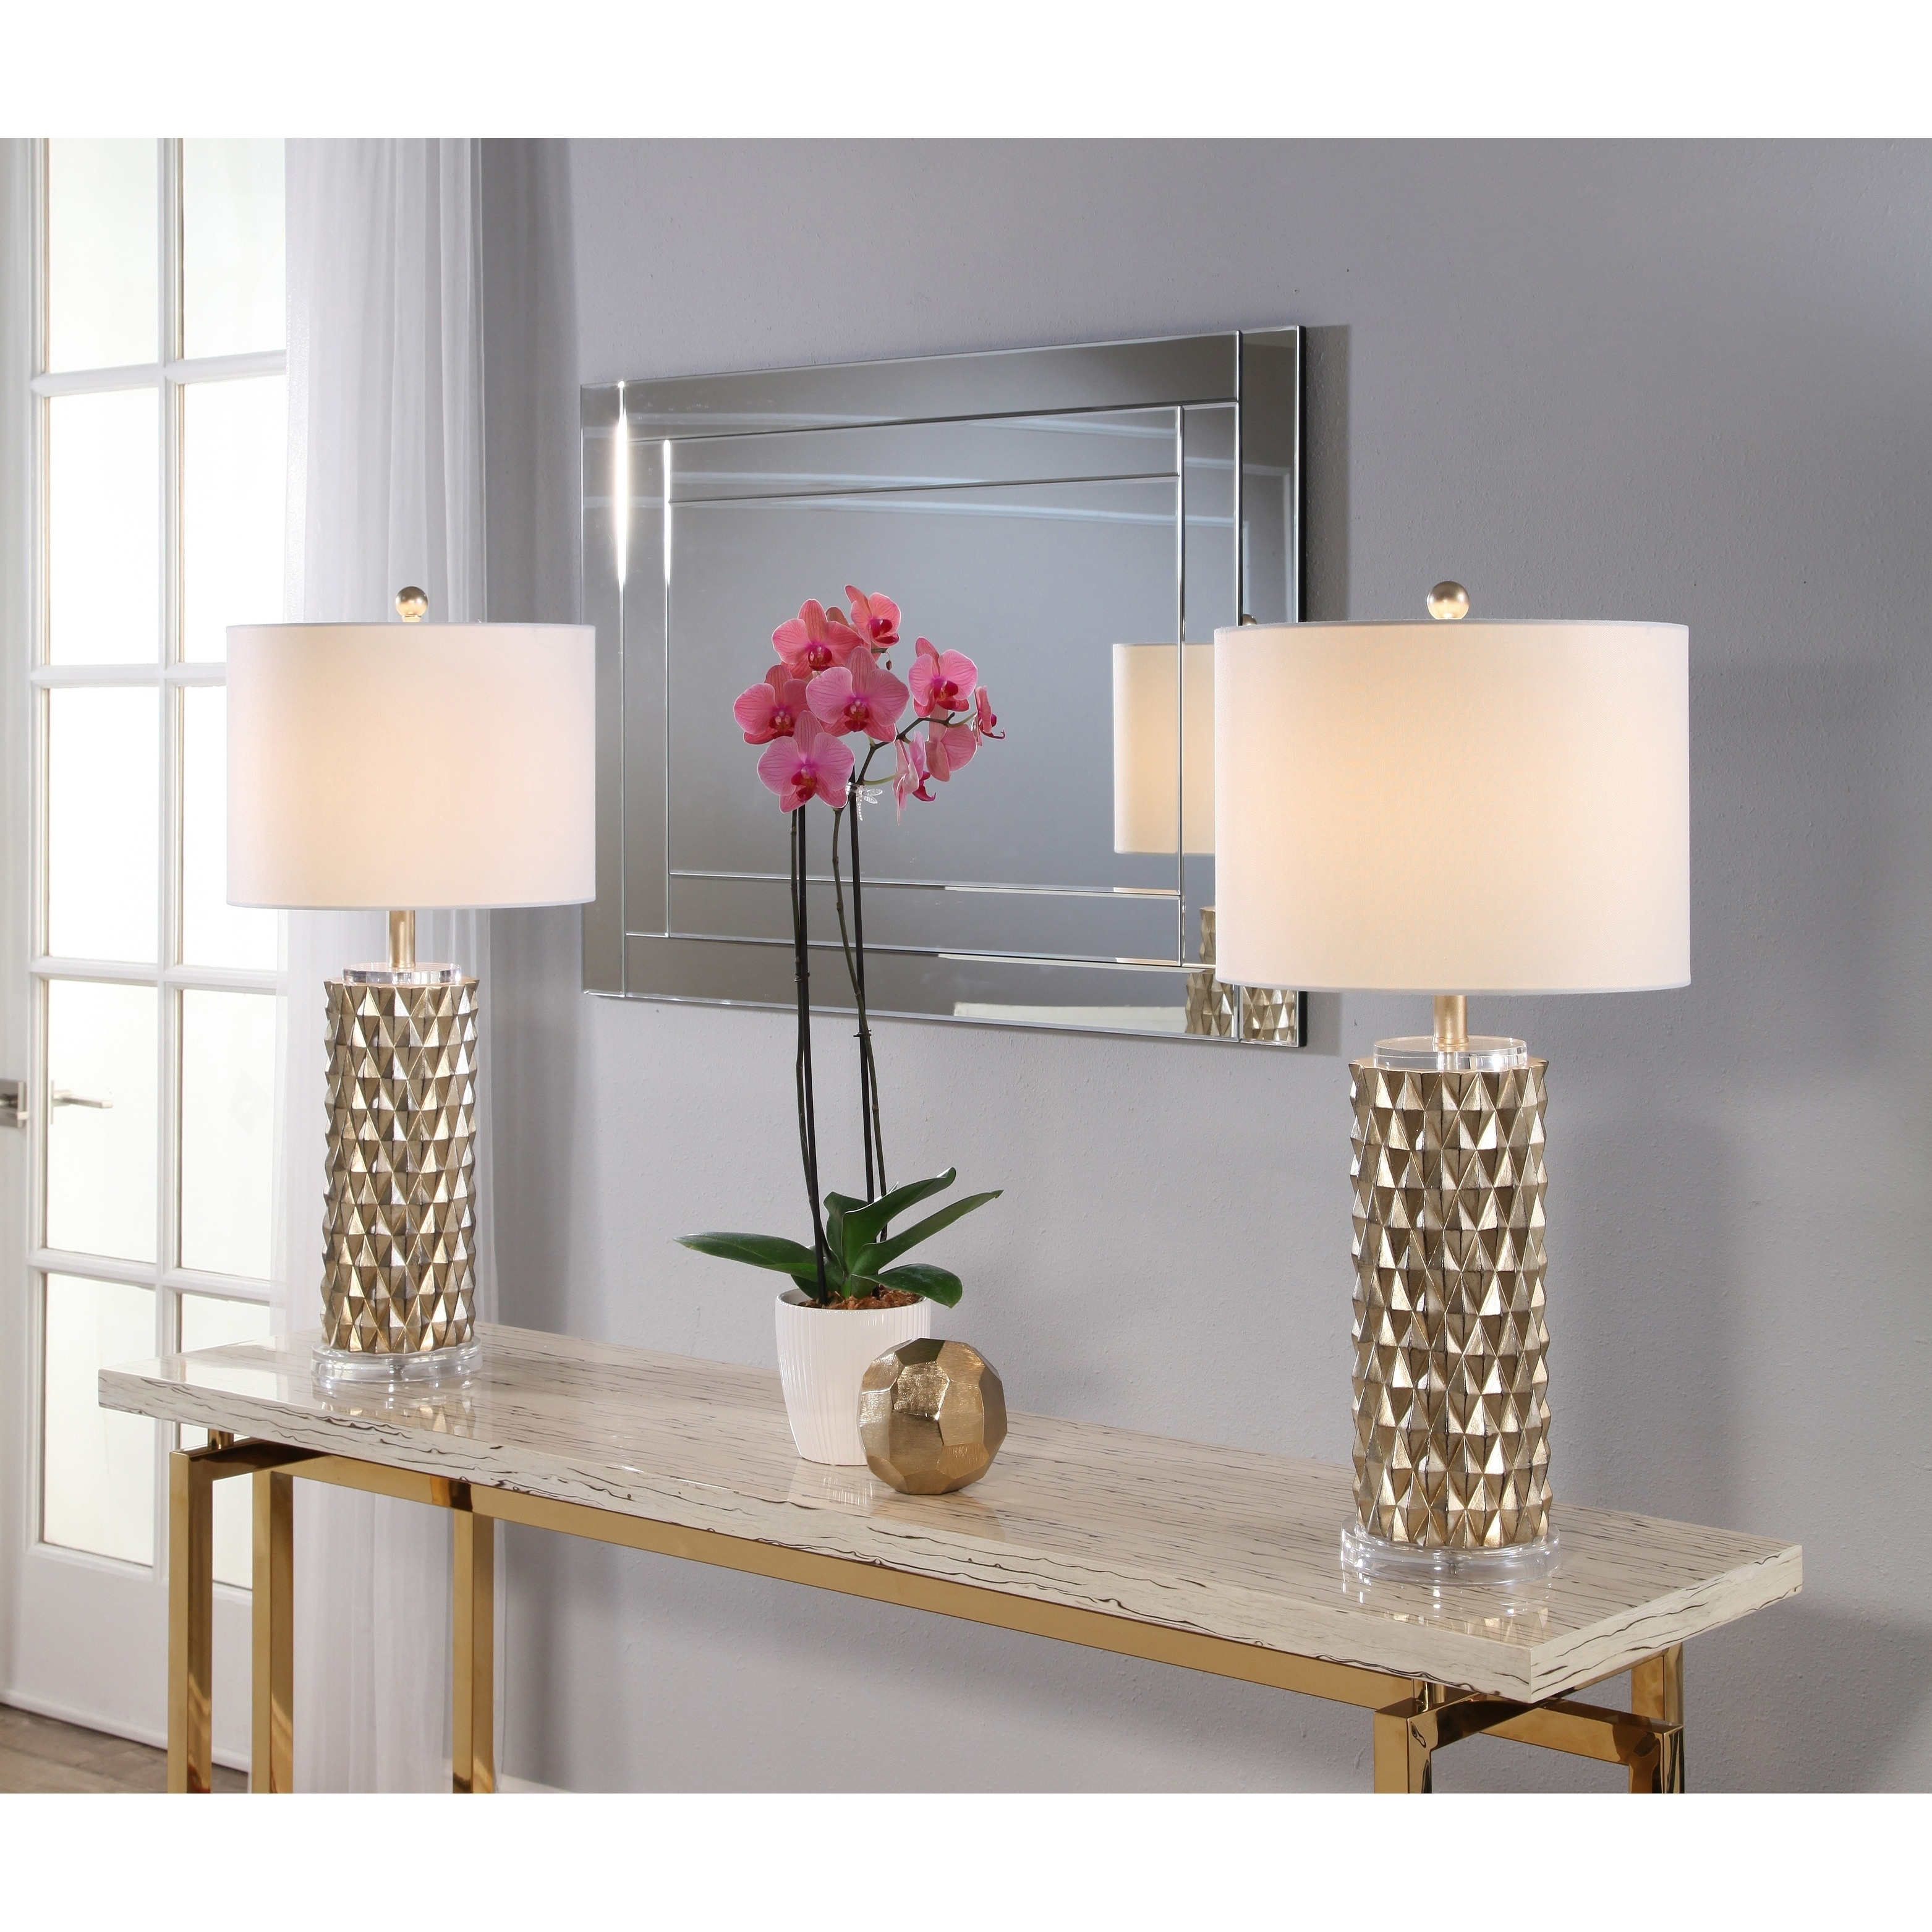 Abbyson Francesco Textured Gold 30 Inch Table Lamp Set Of 2 Overstock 21134126